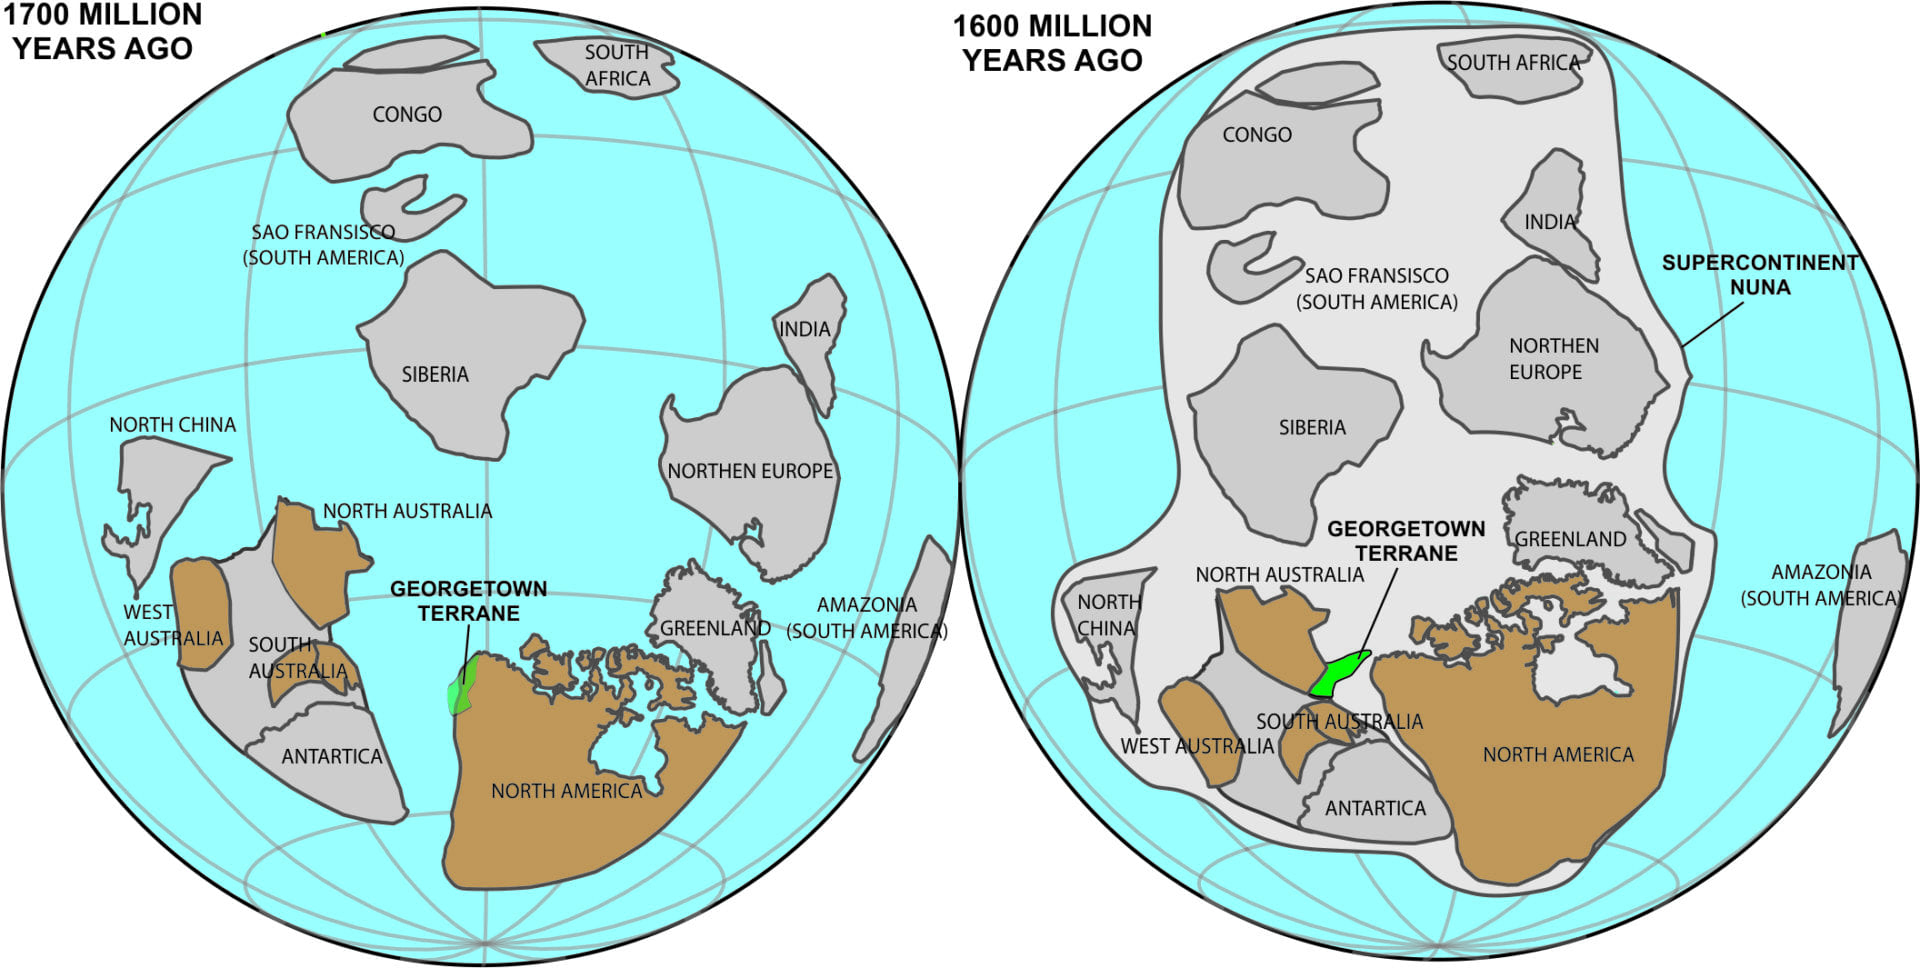 Supercontinent Nuna diagram